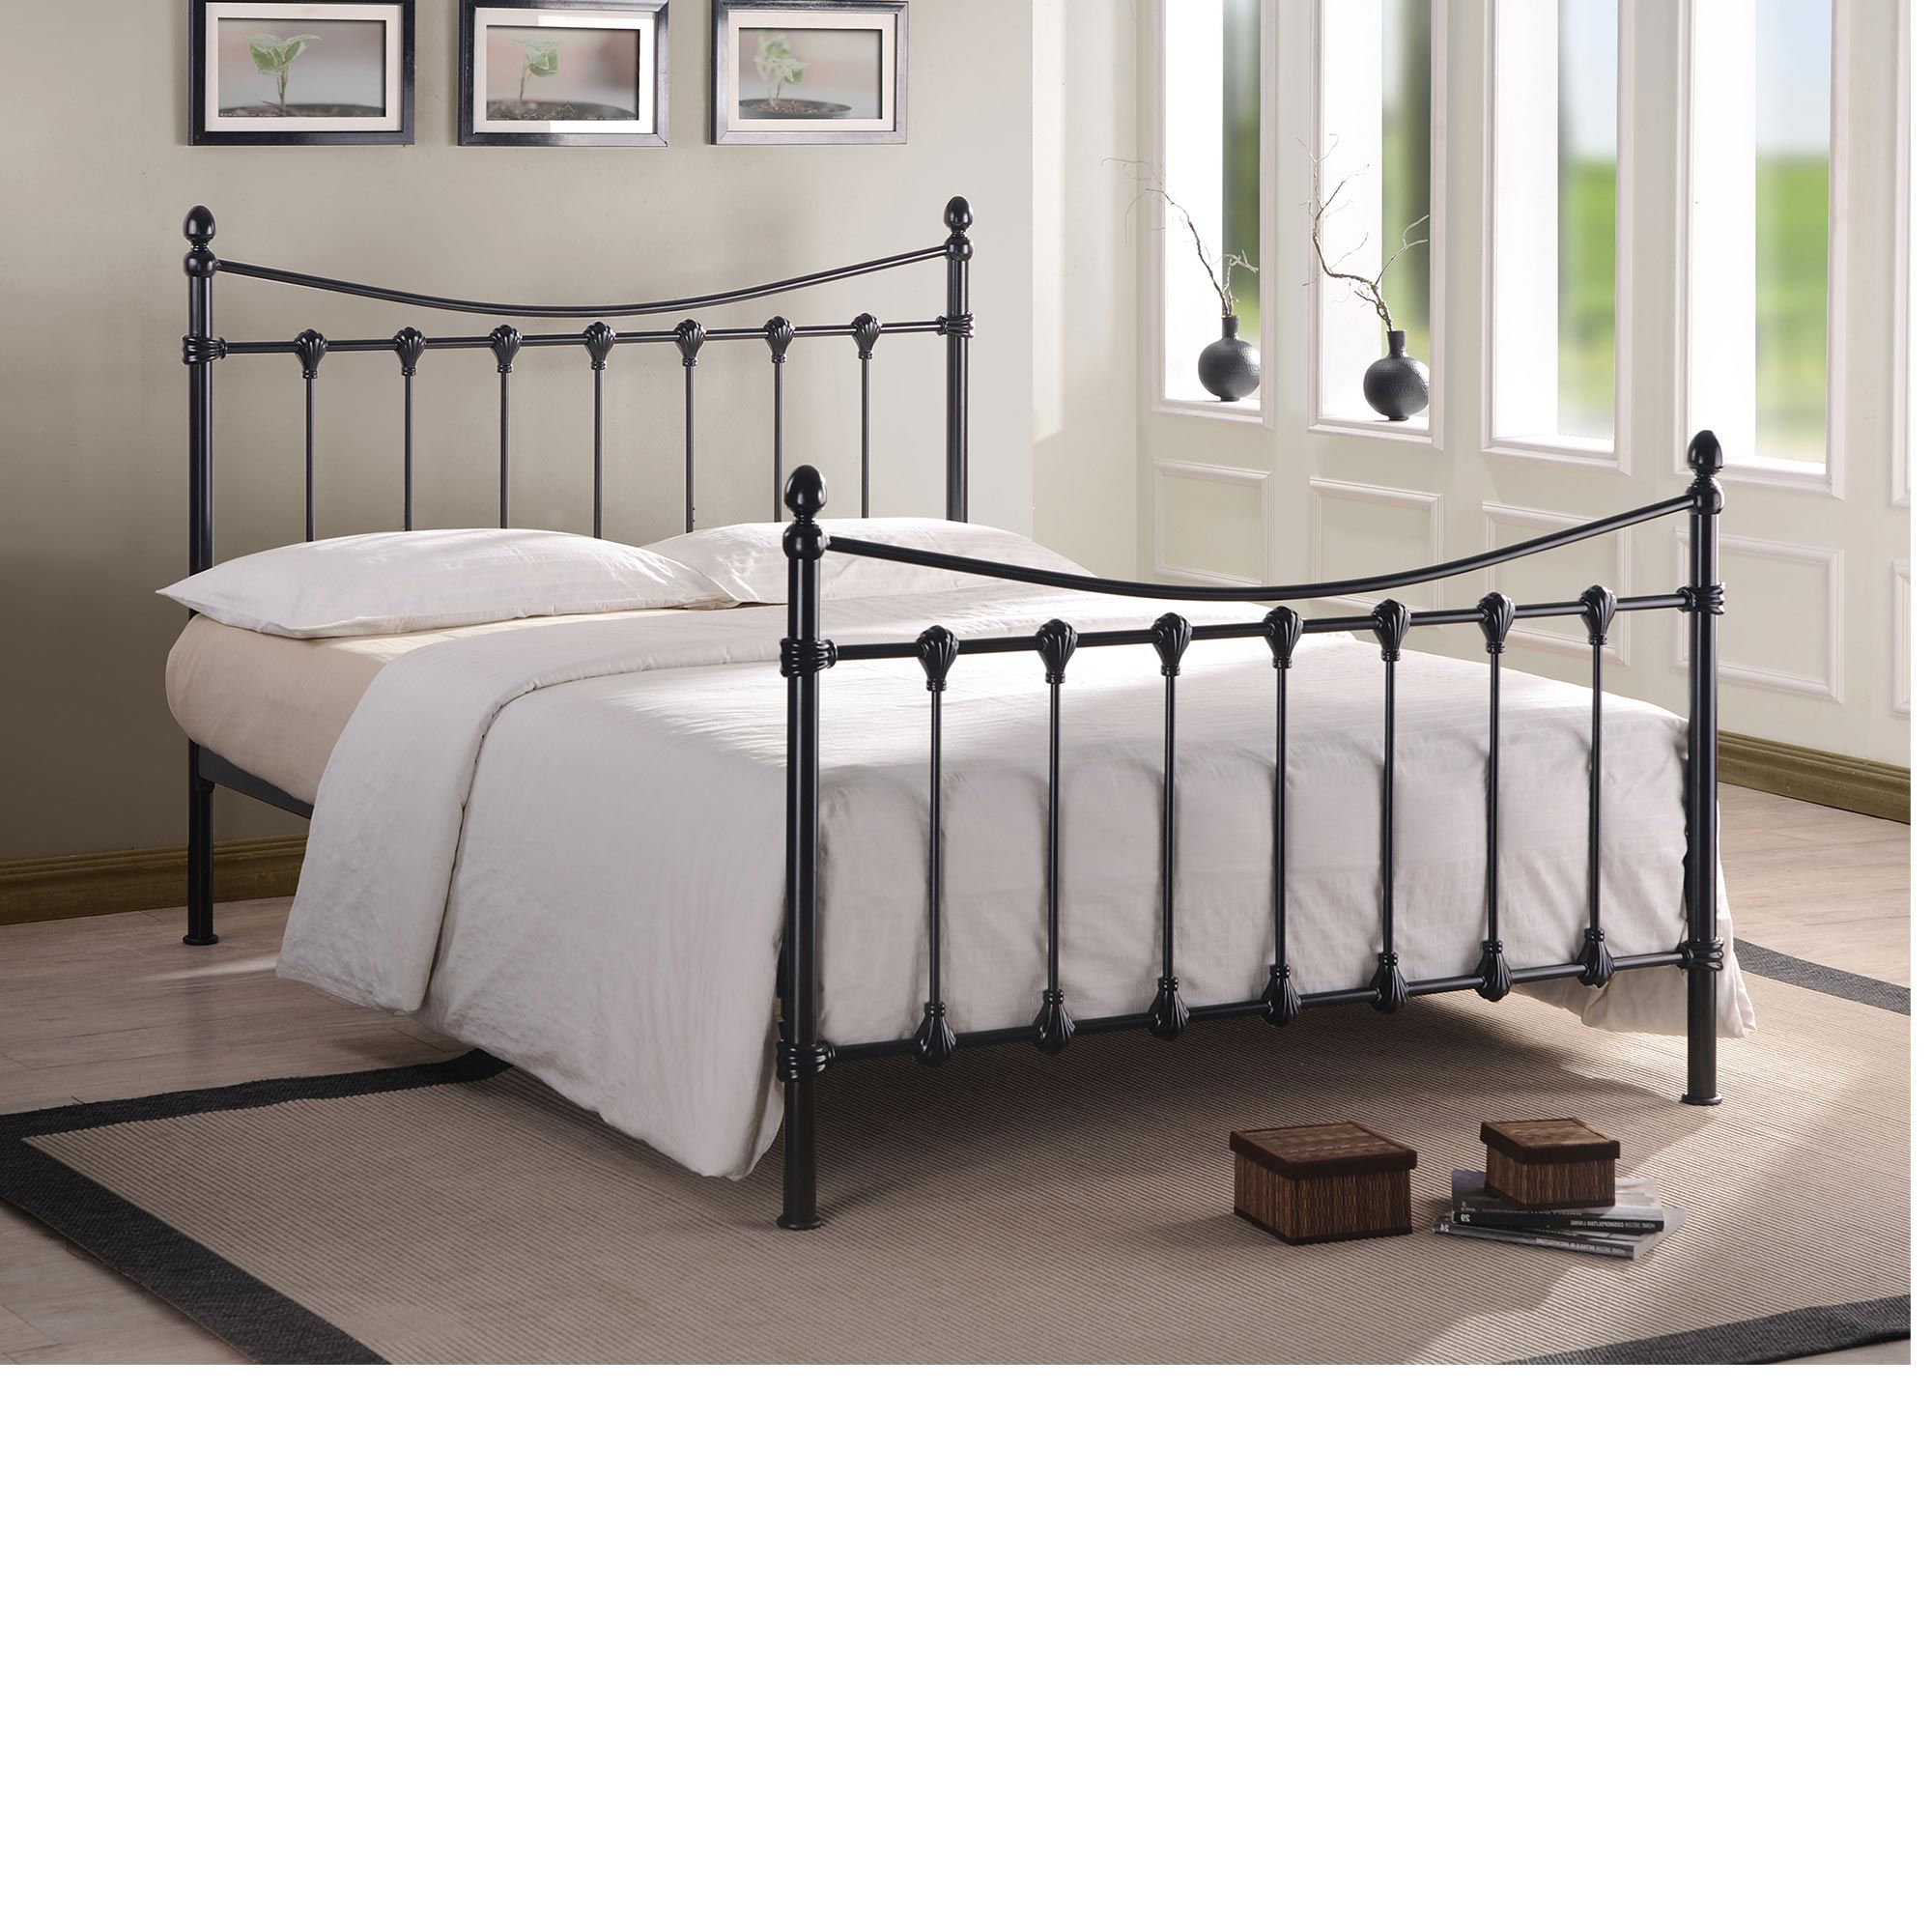 Black Metal Queen Bed Frame With White Bedding And Grey Walls 60